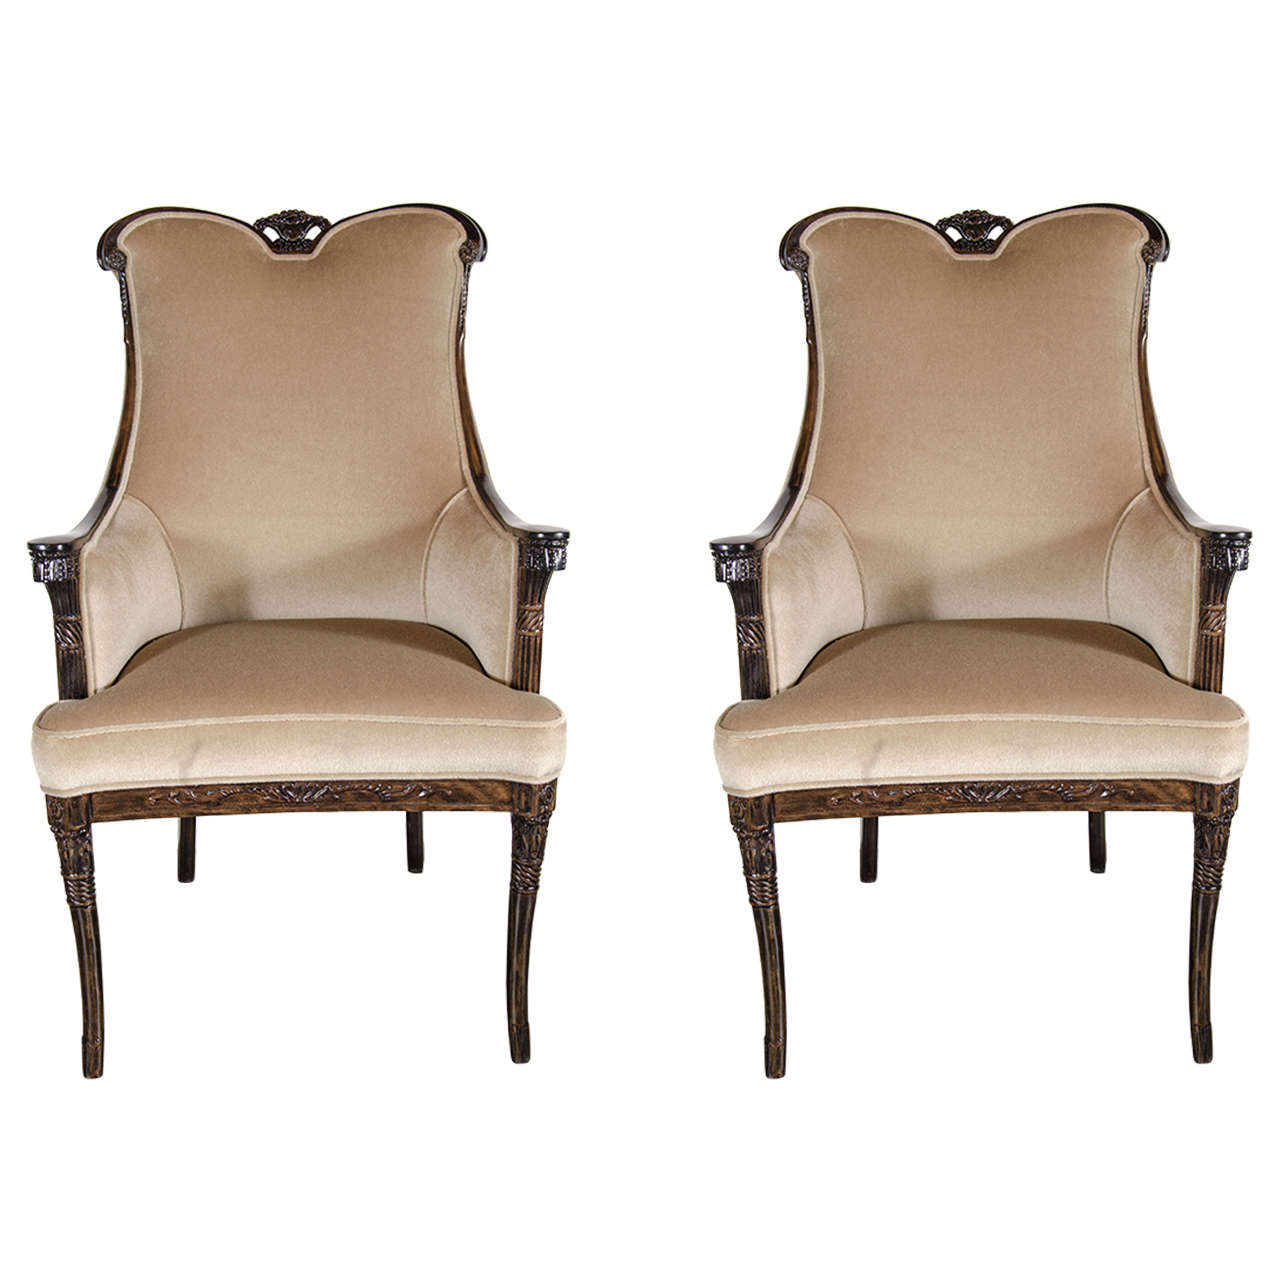 Pair of 1940s Hollywood Style Occasional Chairs by Grosfeld House 1. Pair of 1940s Hollywood Style Occasional Chairs by Grosfeld House